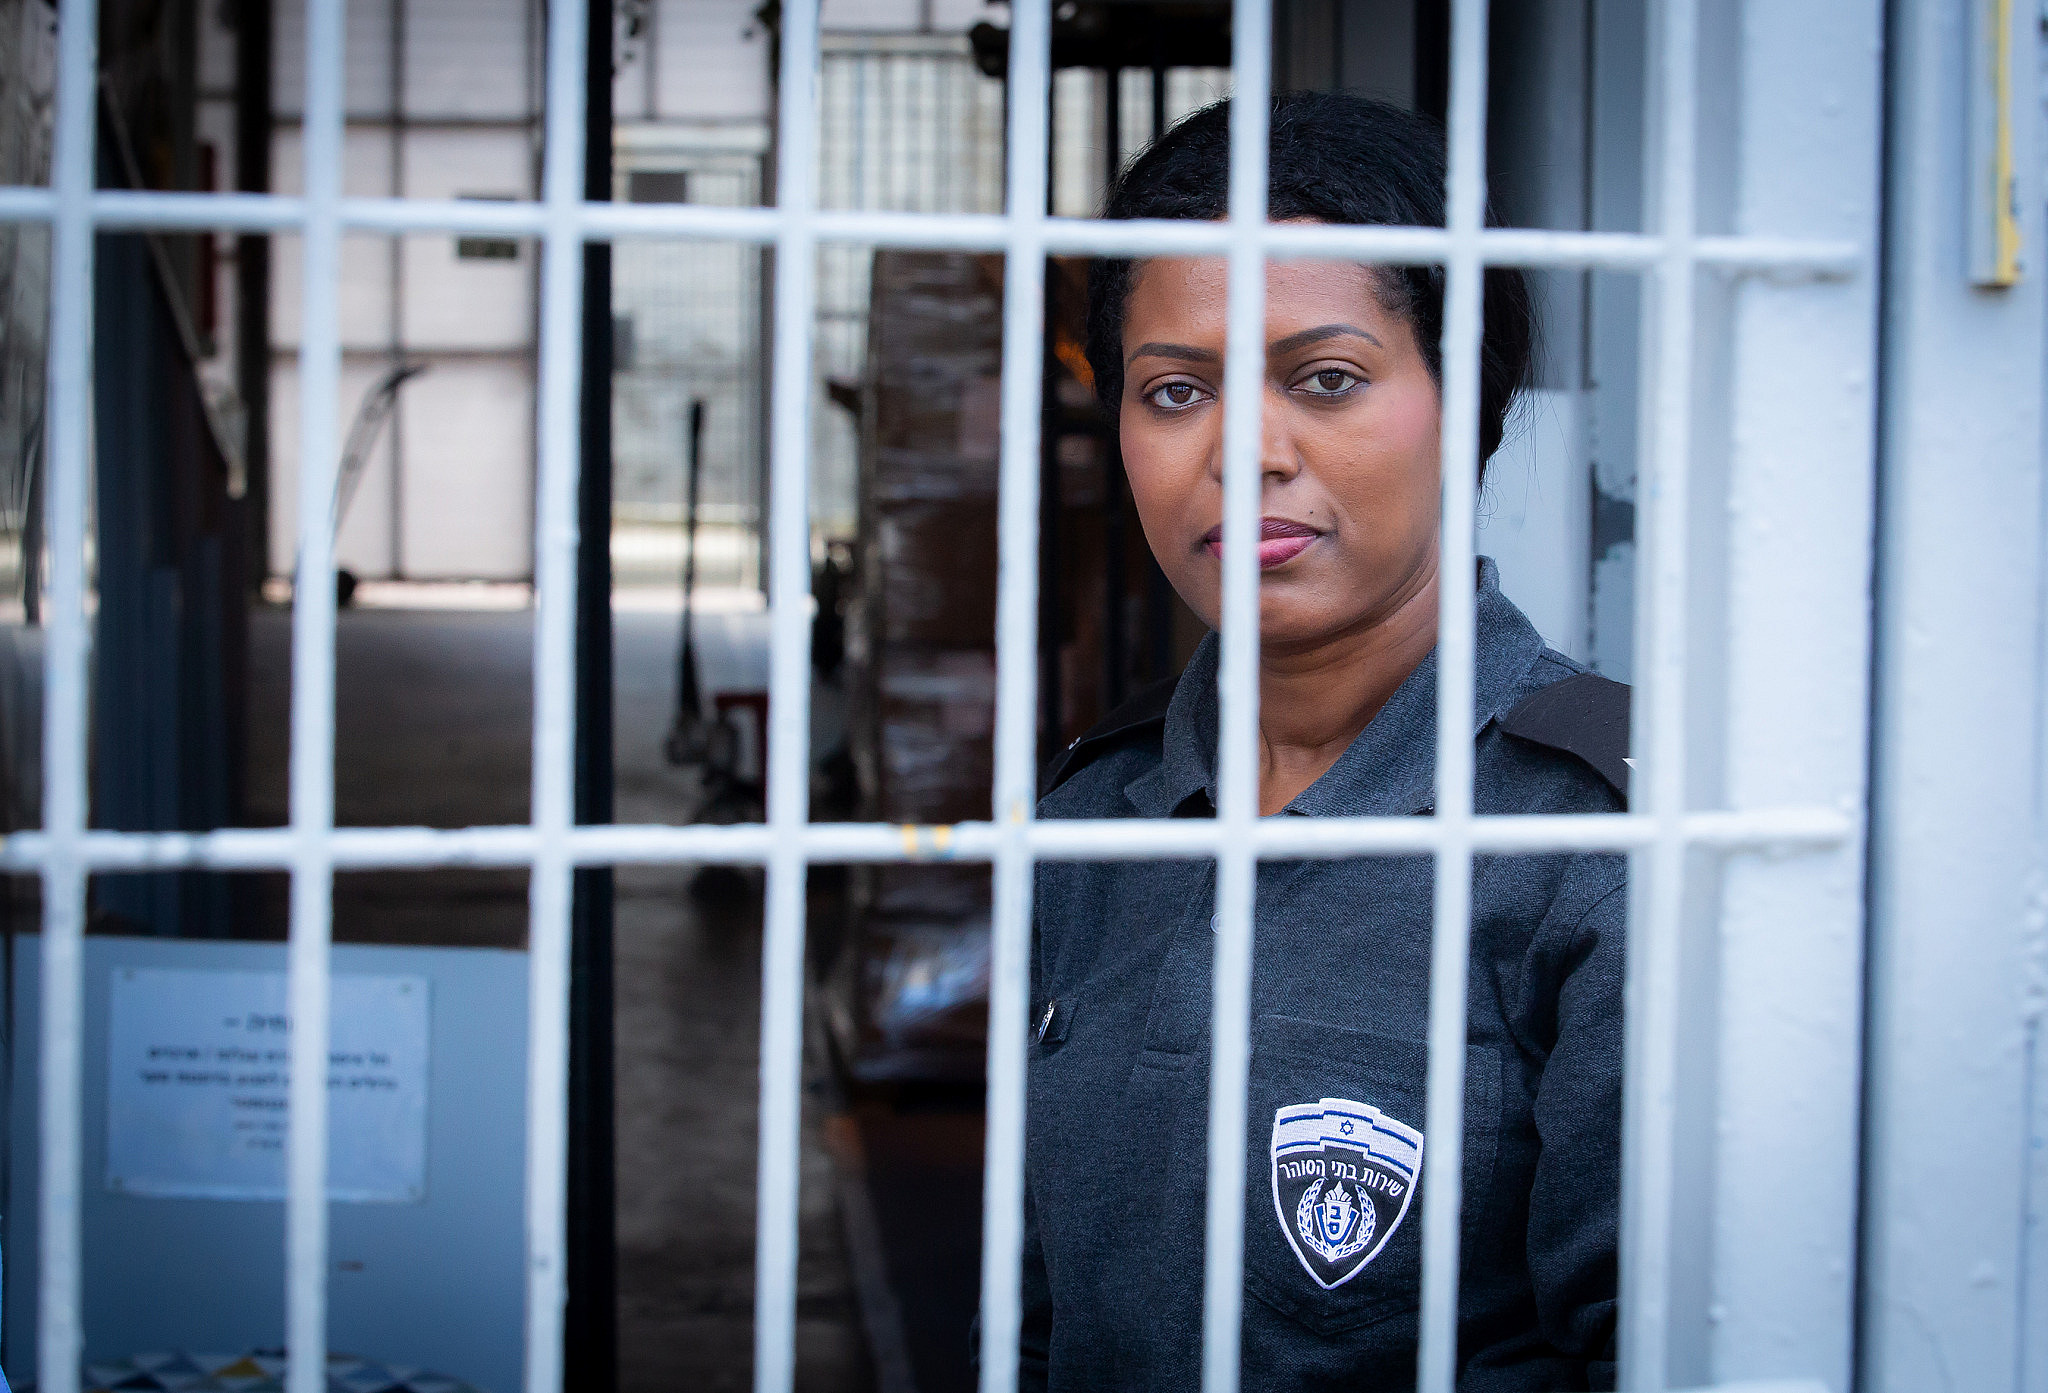 An Israel Prison Service officer stands guard at the Neve Tirtza women's prison, on March 26, 2019. (Moshe Shai/Flash90)